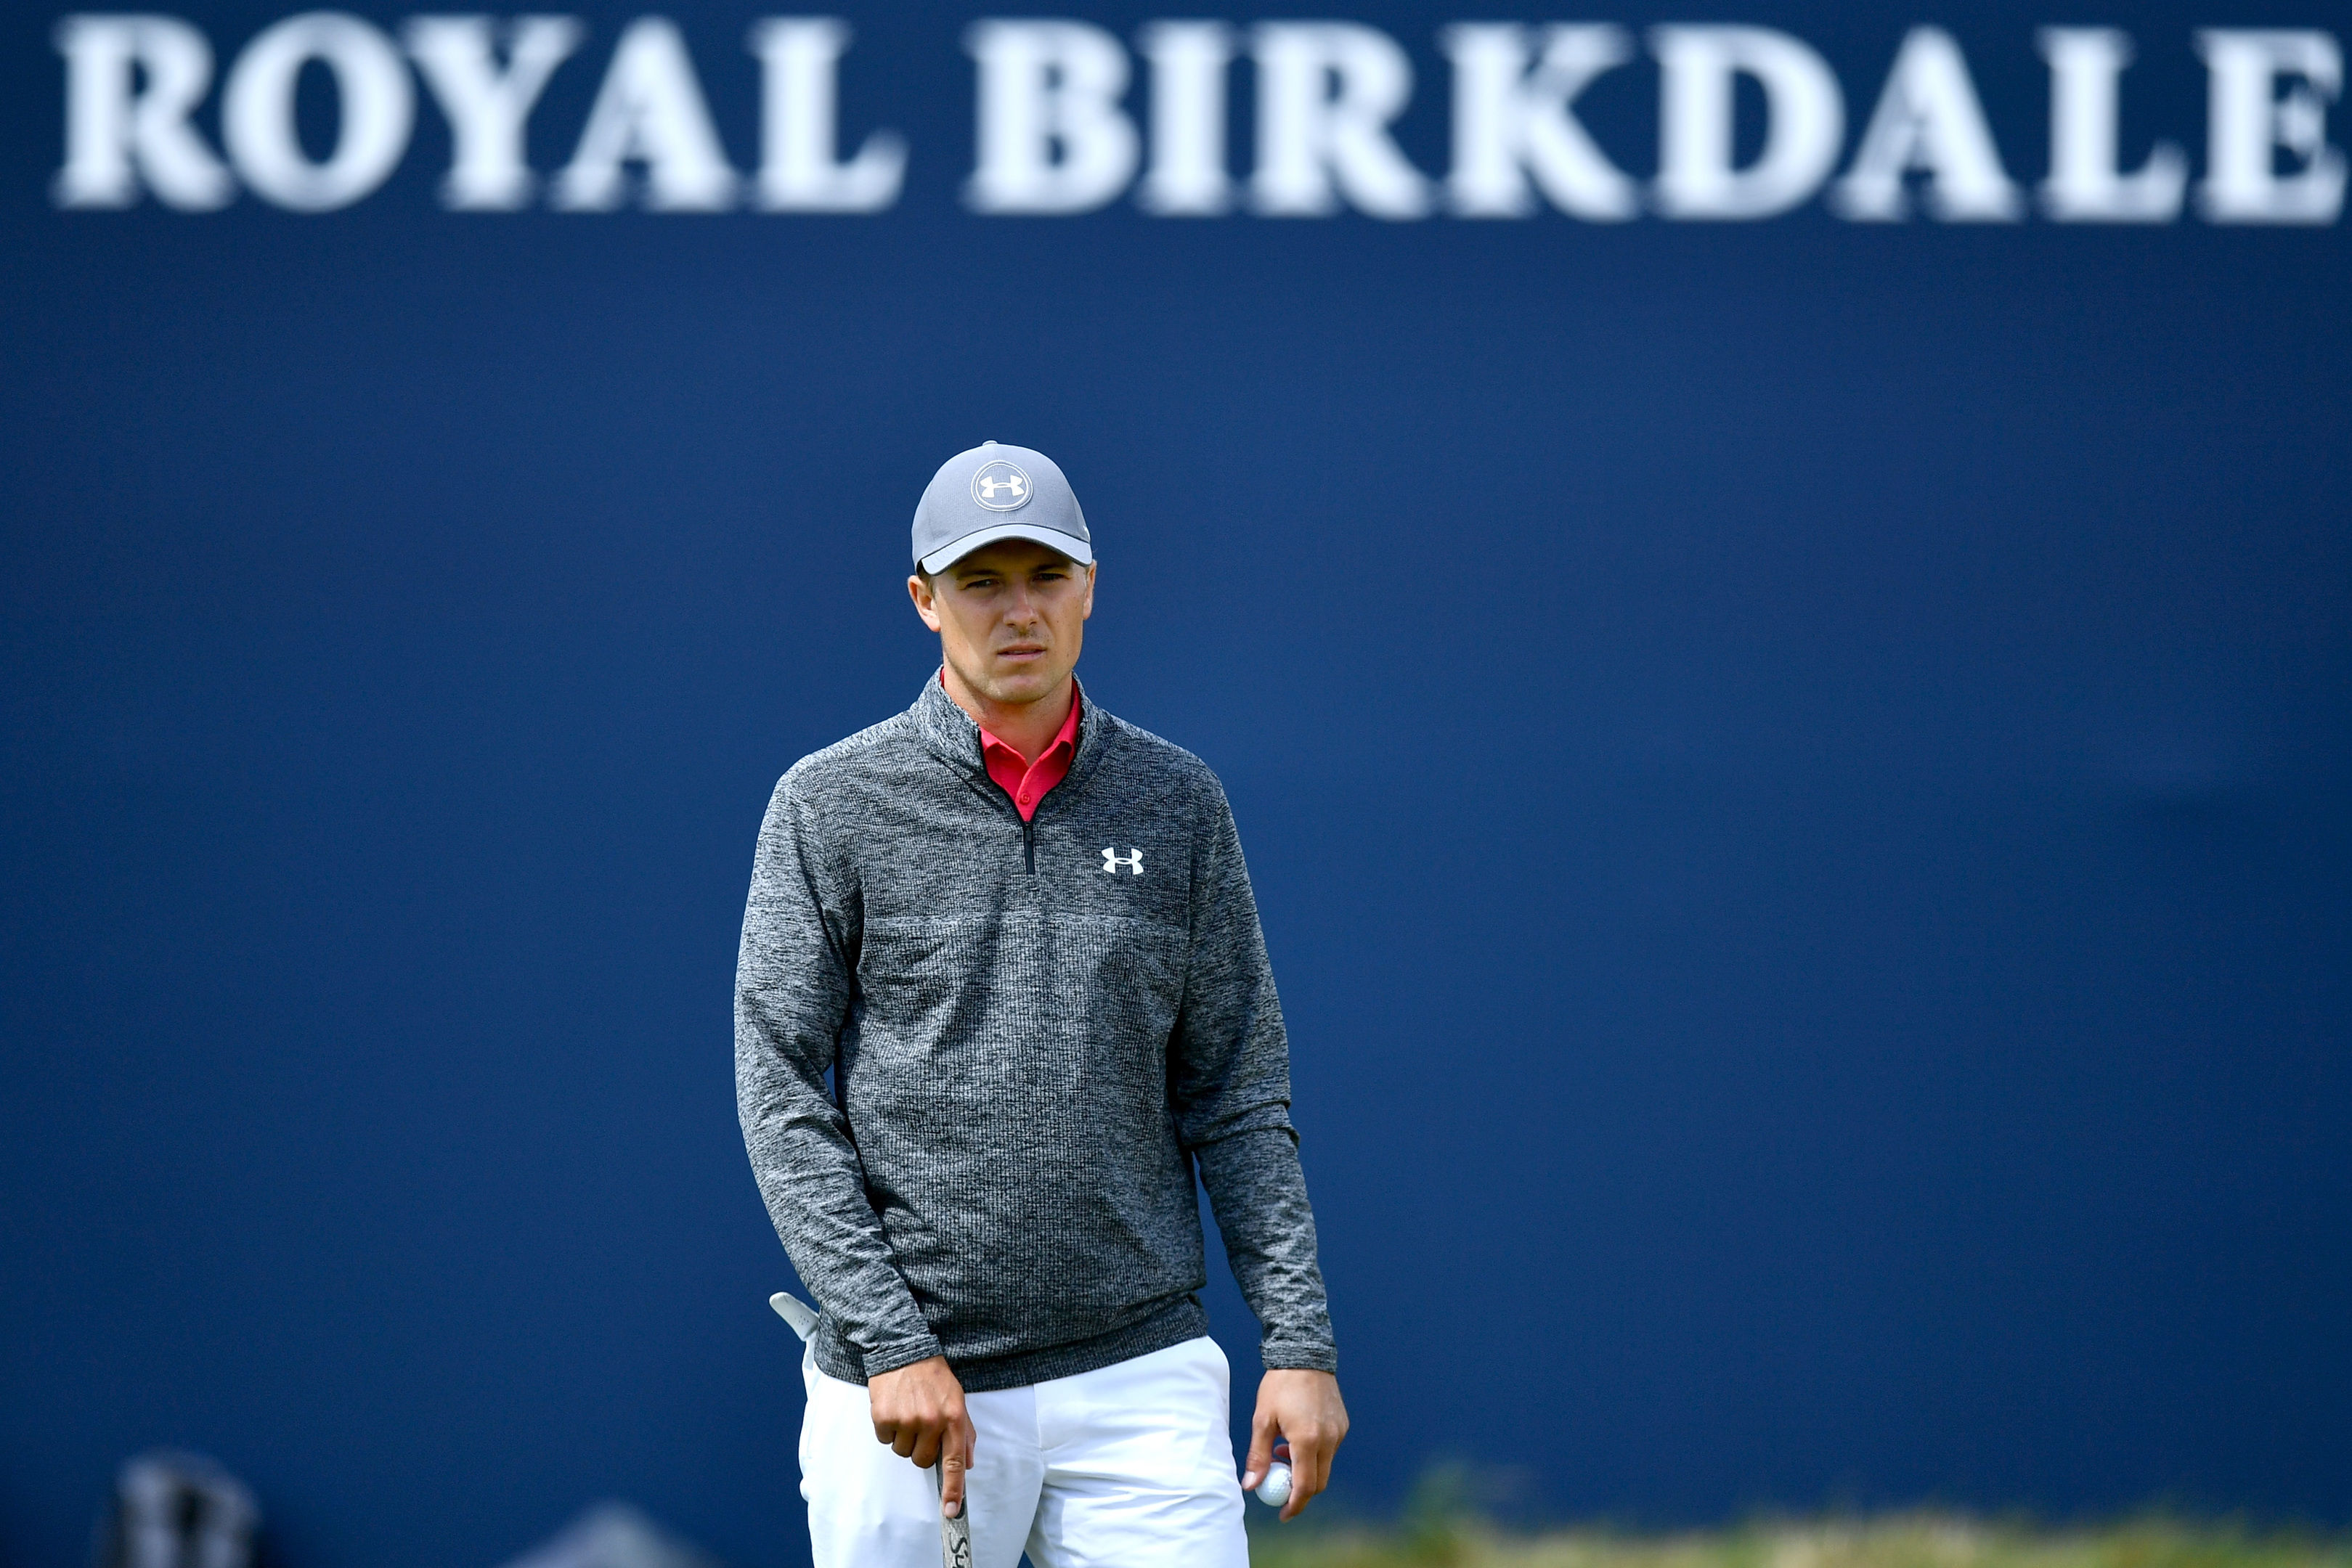 Jordan Spieth shot 65 to be co-leader of the Open at Royal Birkdale.